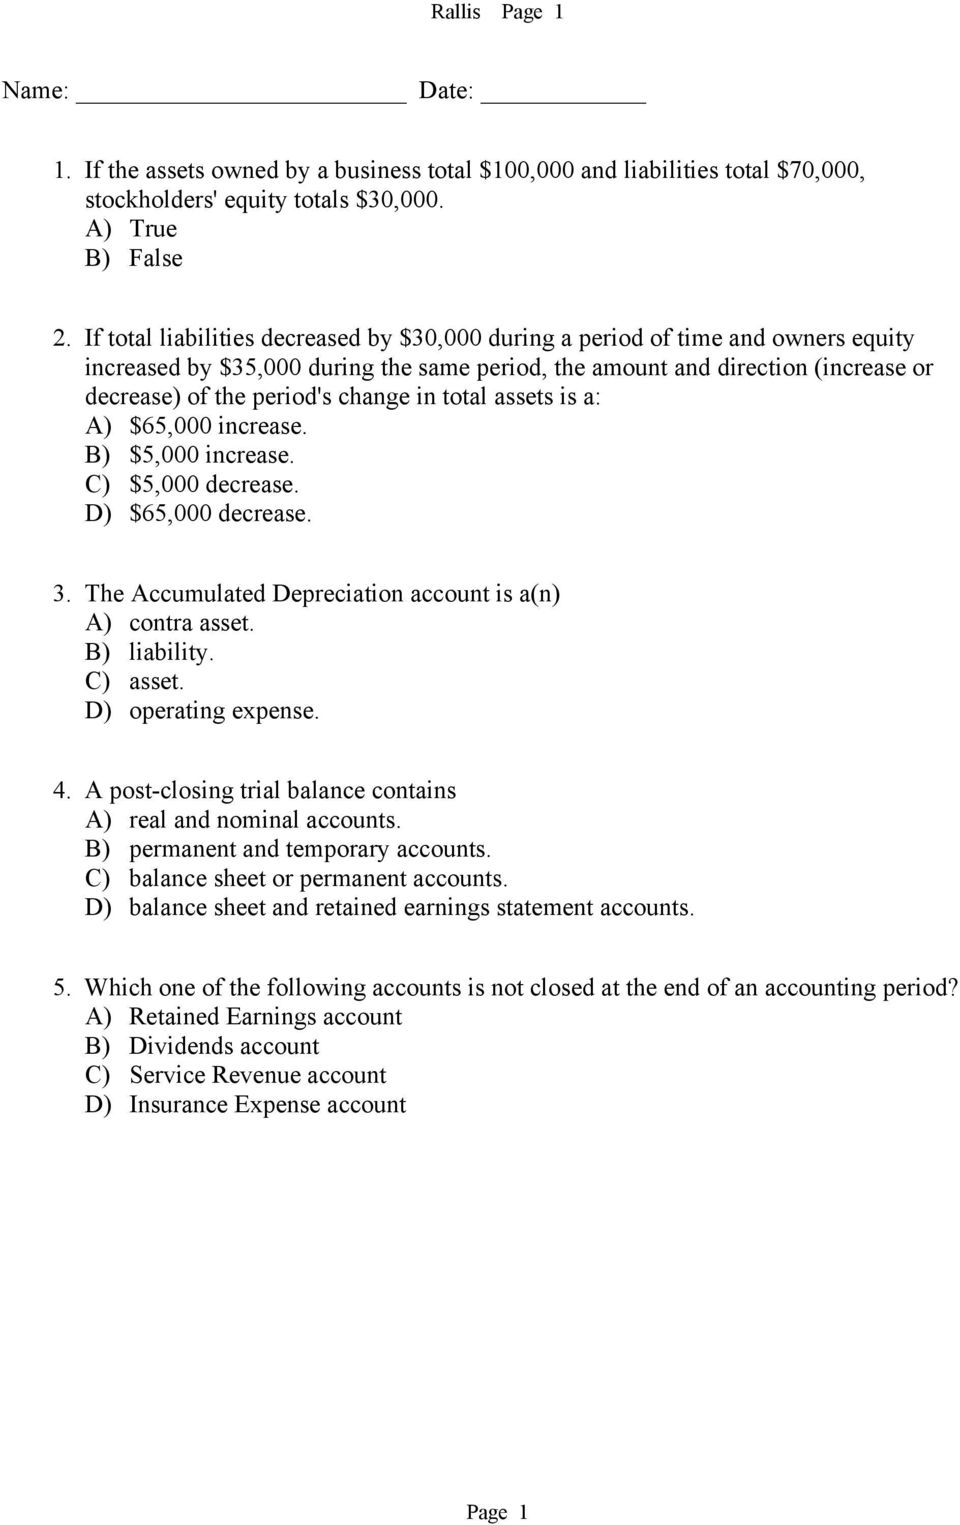 1. If the assets owned by a business total $100,000 and liabilities ...